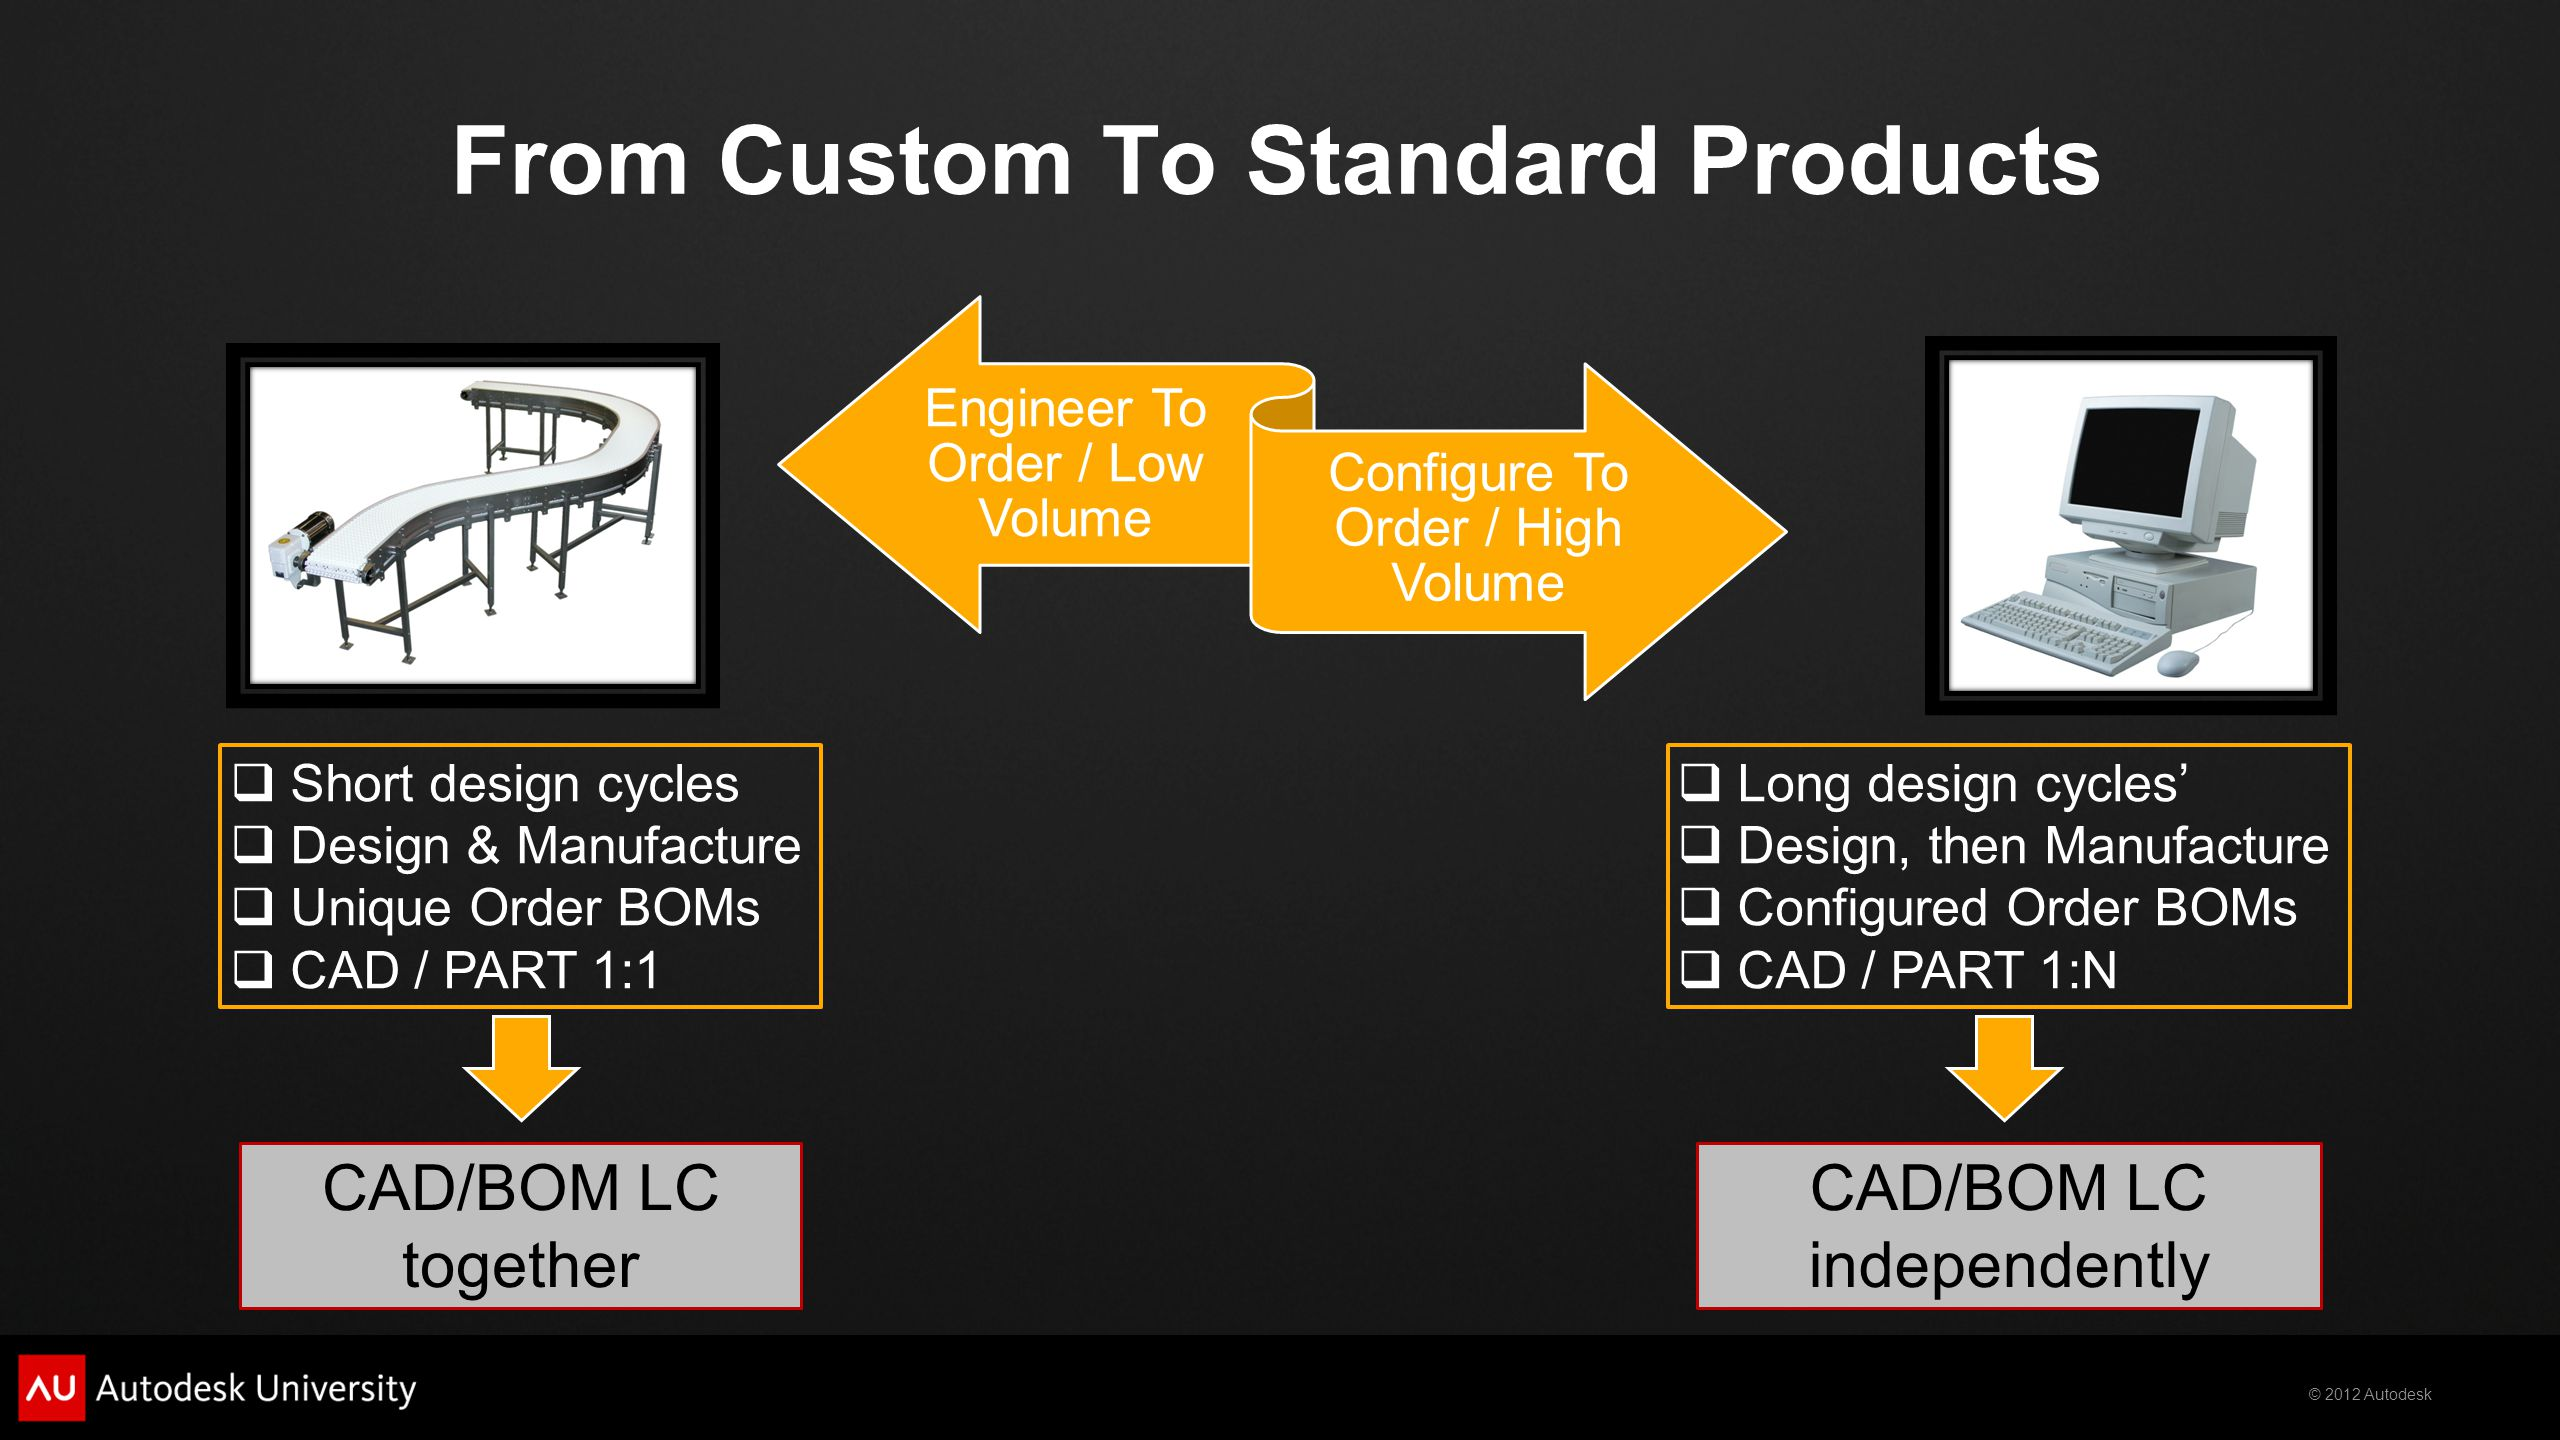 © 2012 Autodesk From Custom To Standard Products Engineer To Order / Low Volume Configure To Order / High Volume CAD/BOM LC together CAD/BOM LC independently Short design cycles Design & Manufacture Unique Order BOMs CAD / PART 1:1 Long design cycles Design, then Manufacture Configured Order BOMs CAD / PART 1:N